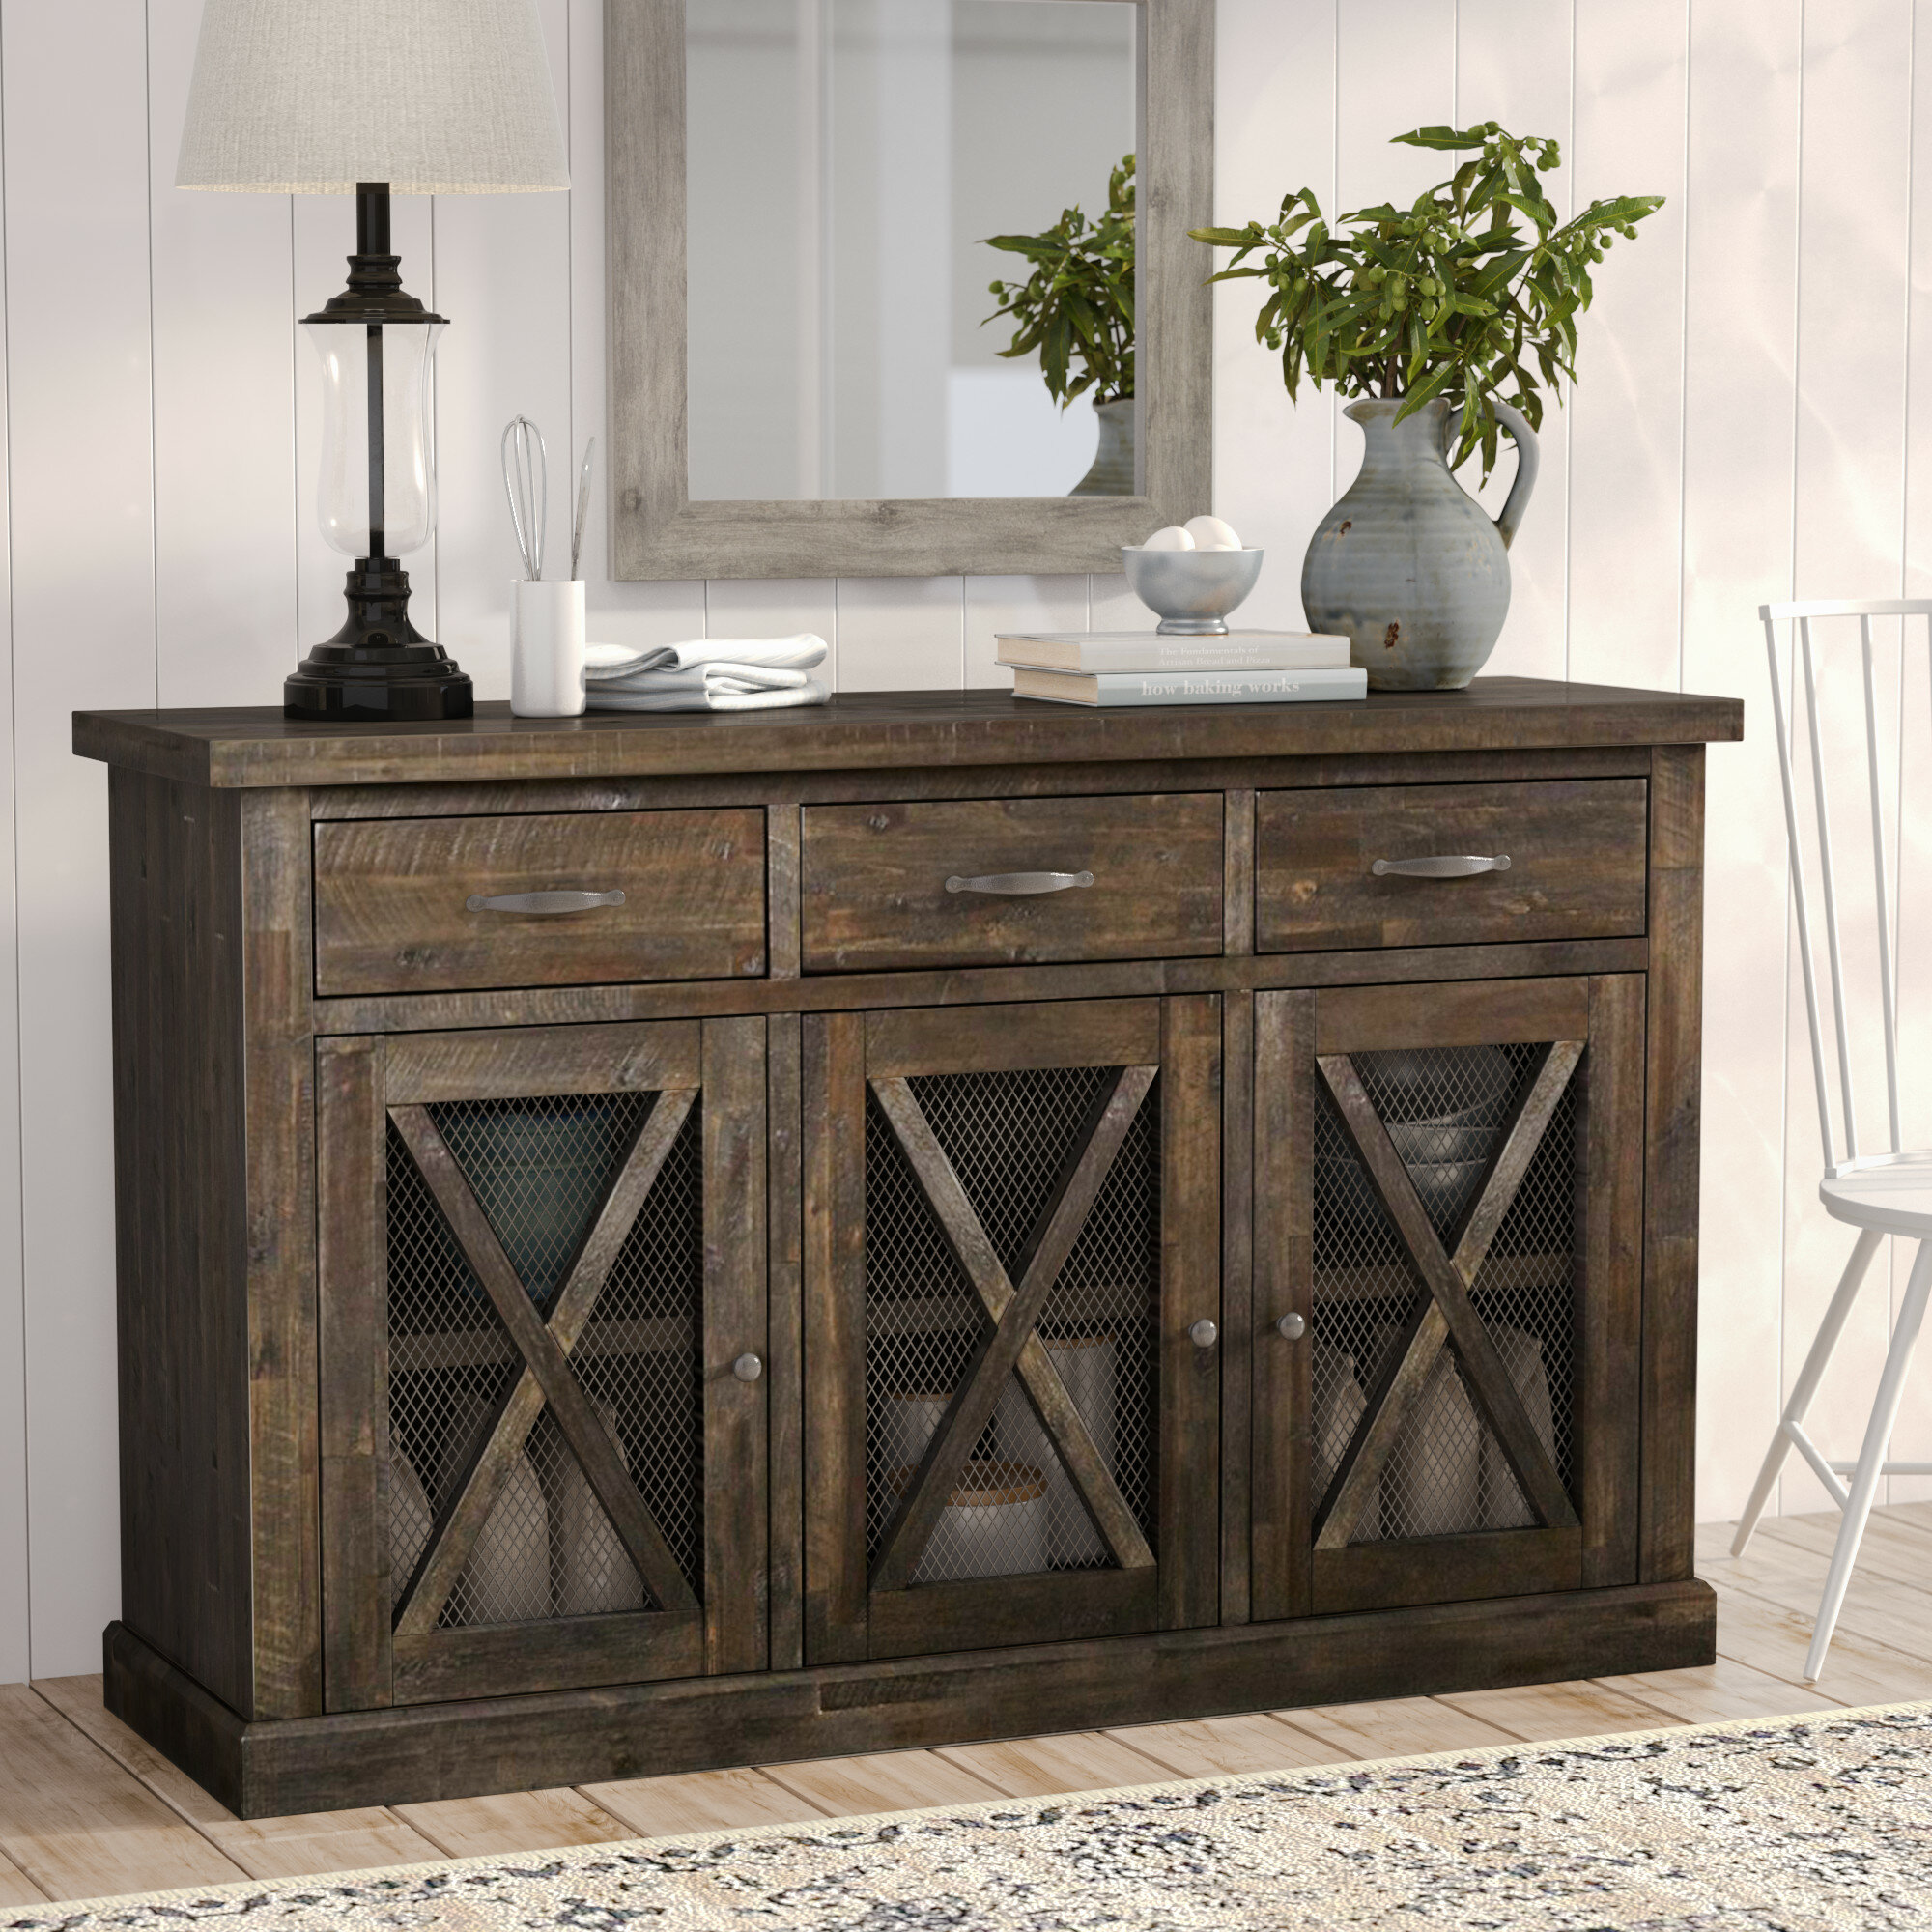 with barns cabinets wine bases barn grid bar modular door pottery buffet glass media sideboard